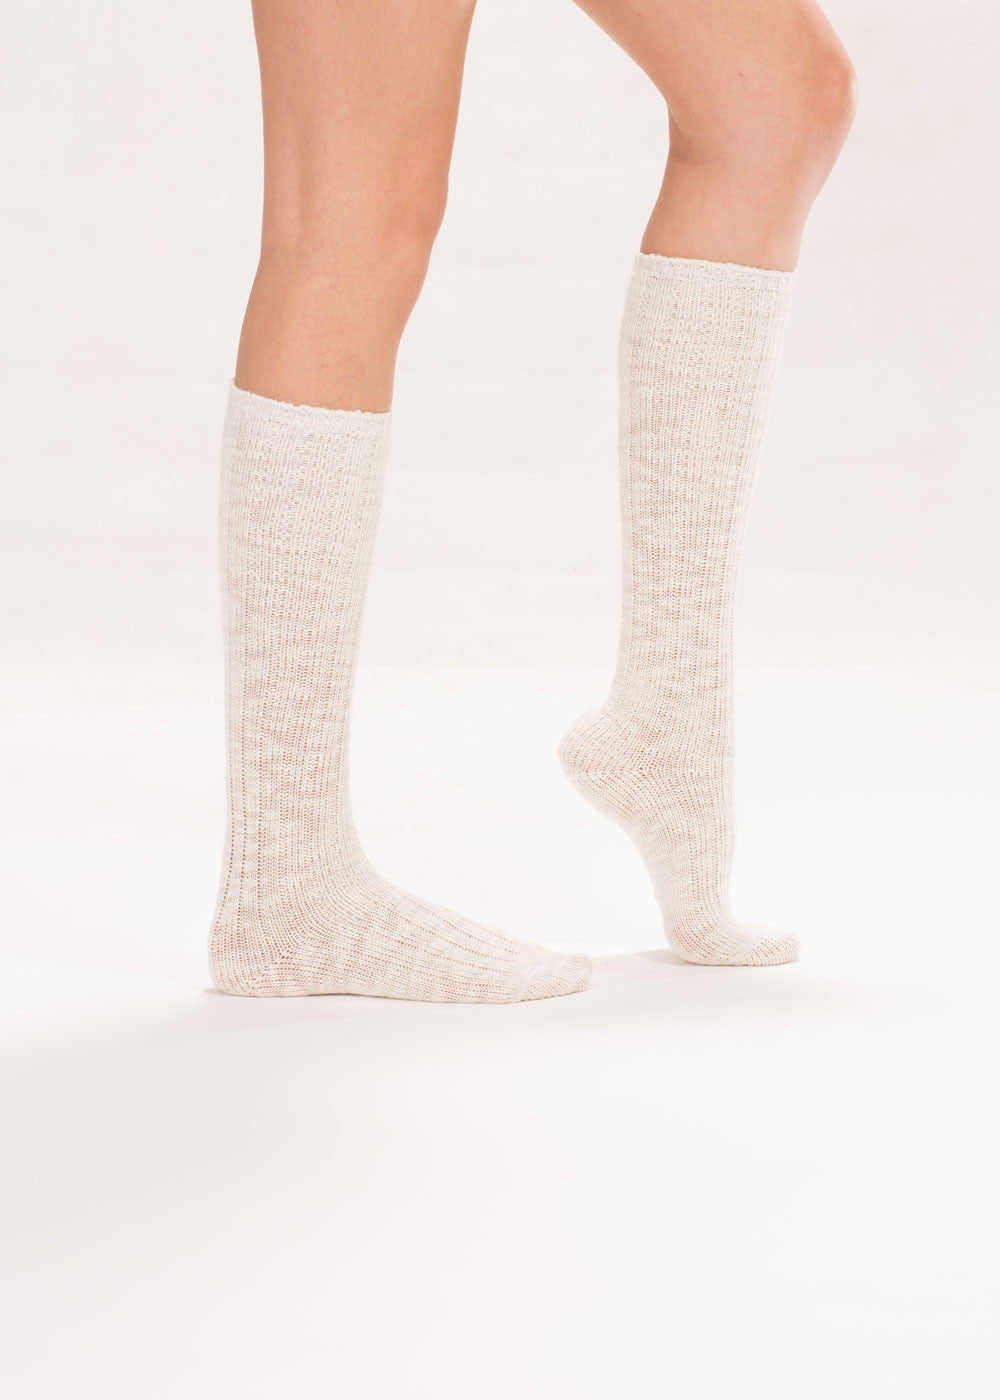 heather-ivory-knee-high-socks